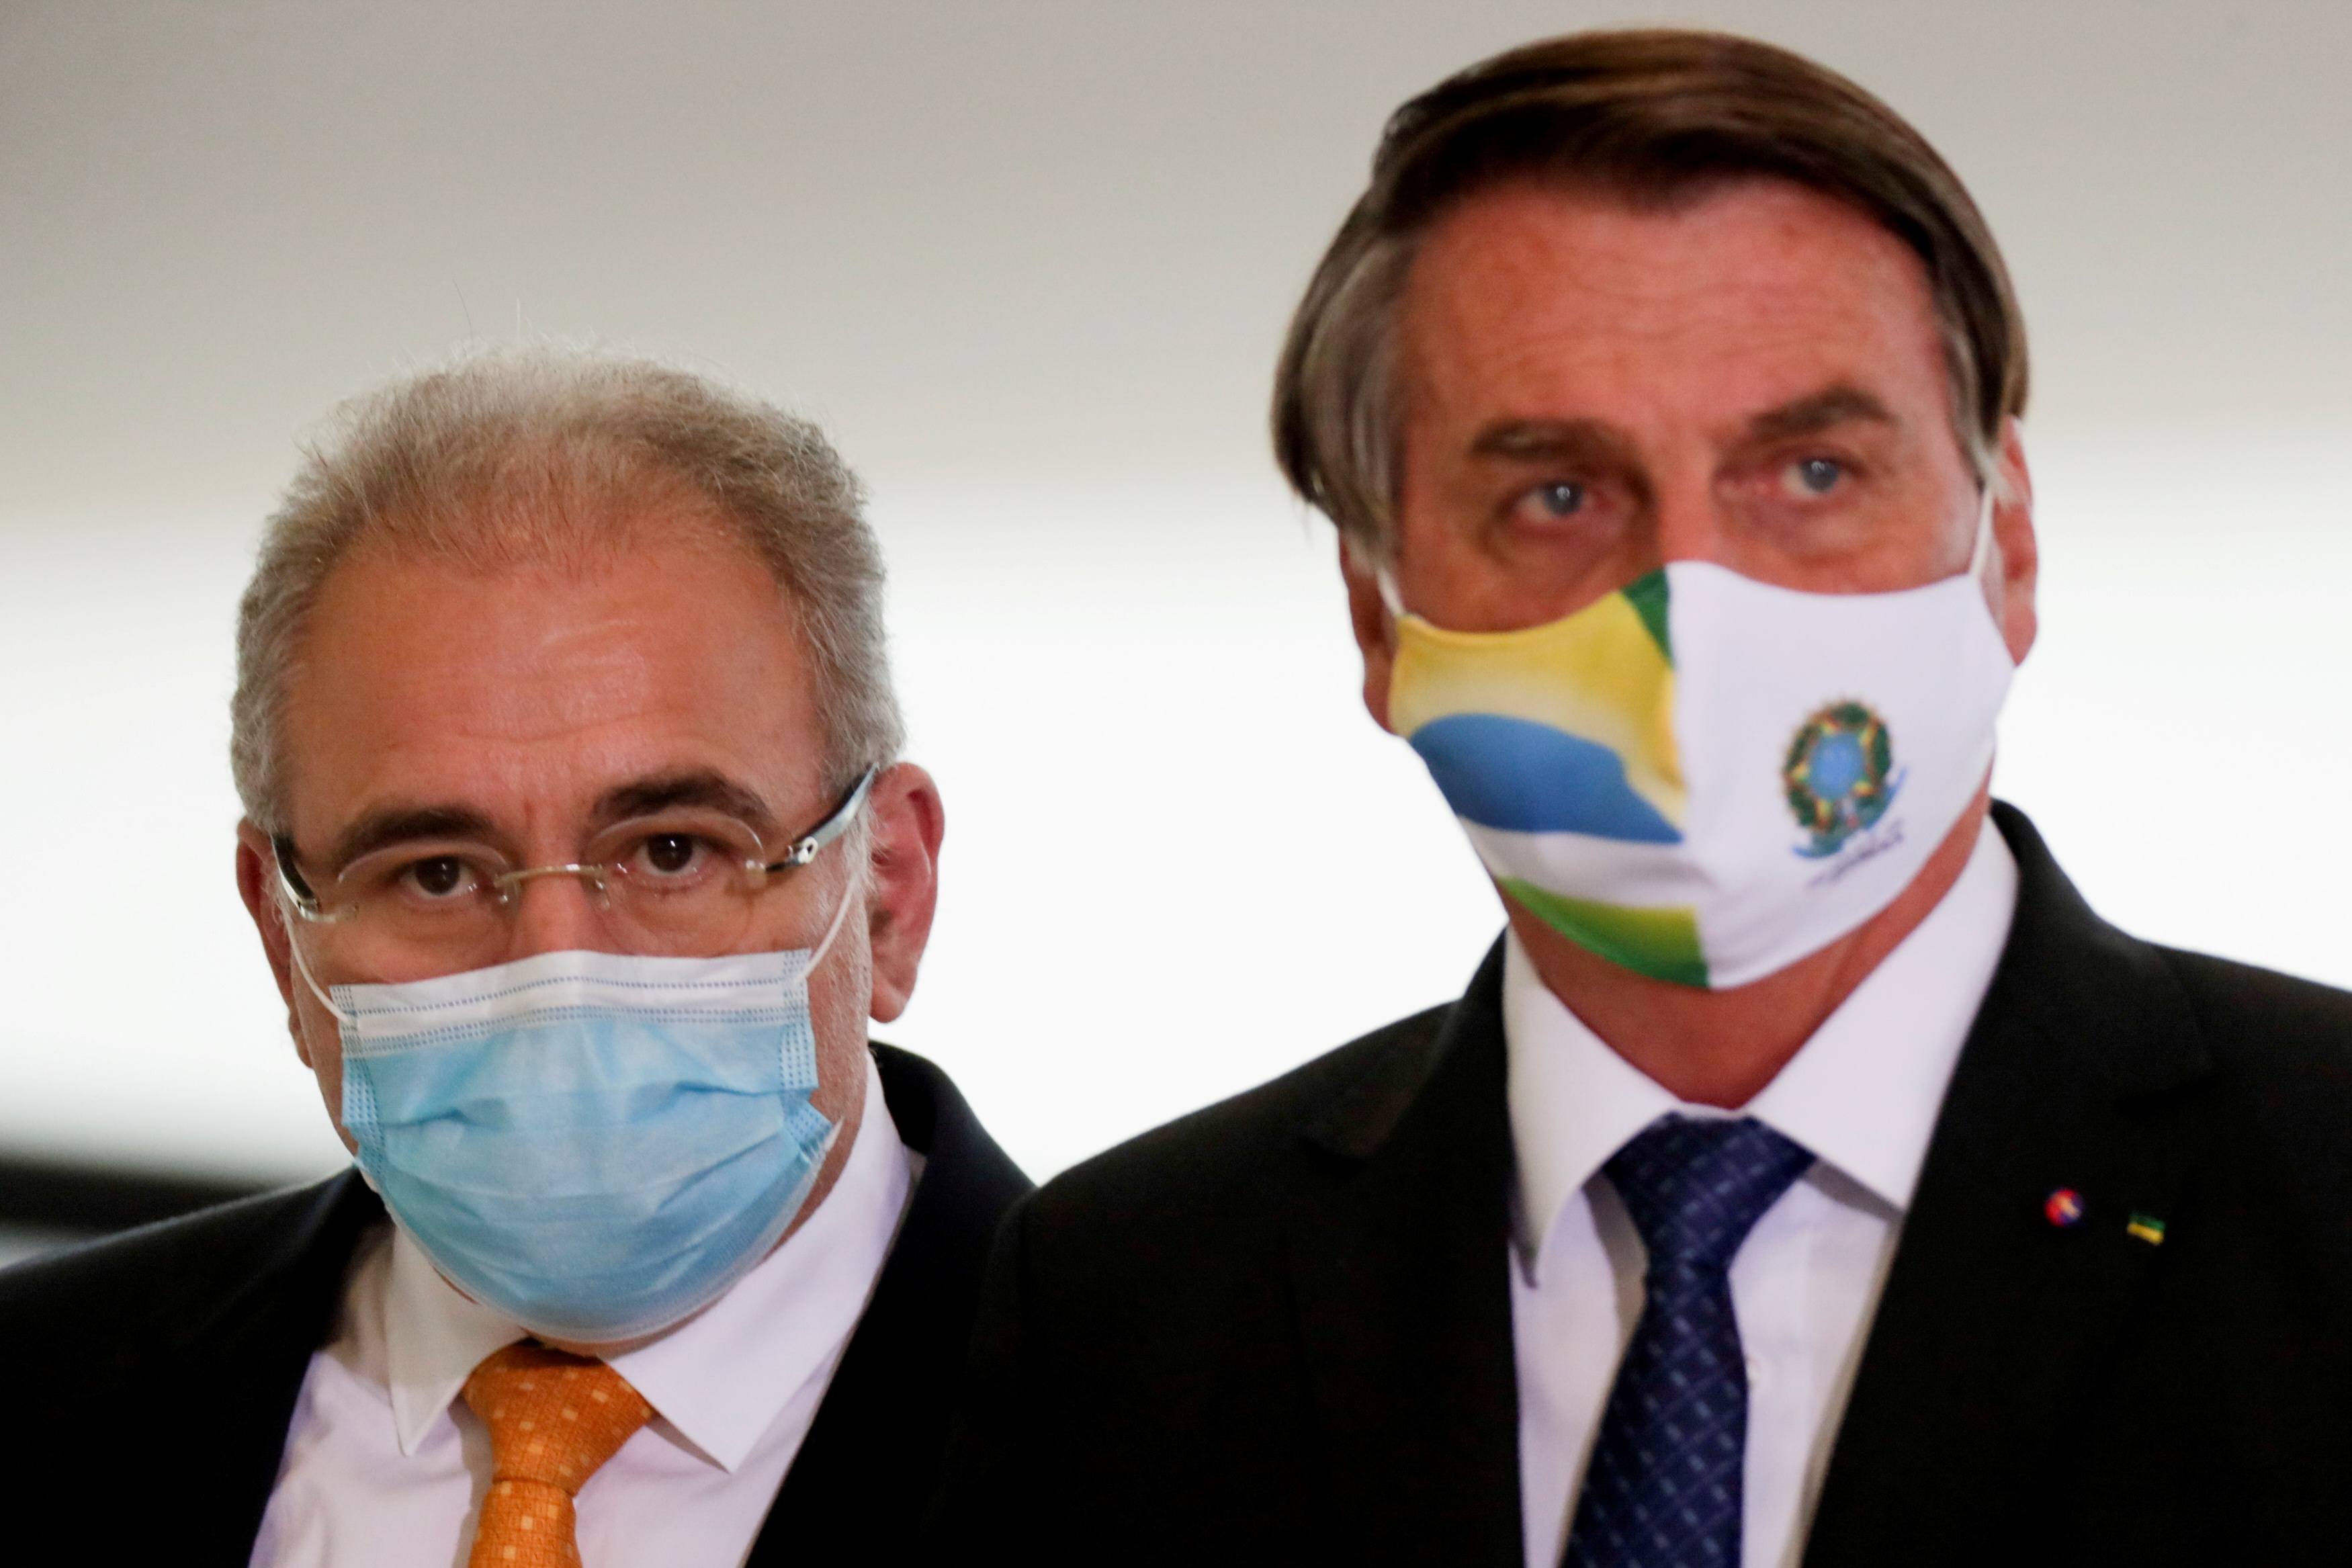 Brazil's Health Minister Marcelo Queiroga and Brazil's President Jair Bolsonaro arrive for a ceremony of release of resources for Primary Health Care in combat of the coronavirus disease (COVID-19), at the Planalto Palace in Brasilia, Brazil May 11, 2021. REUTERS/Ueslei Marcelino/File Photo